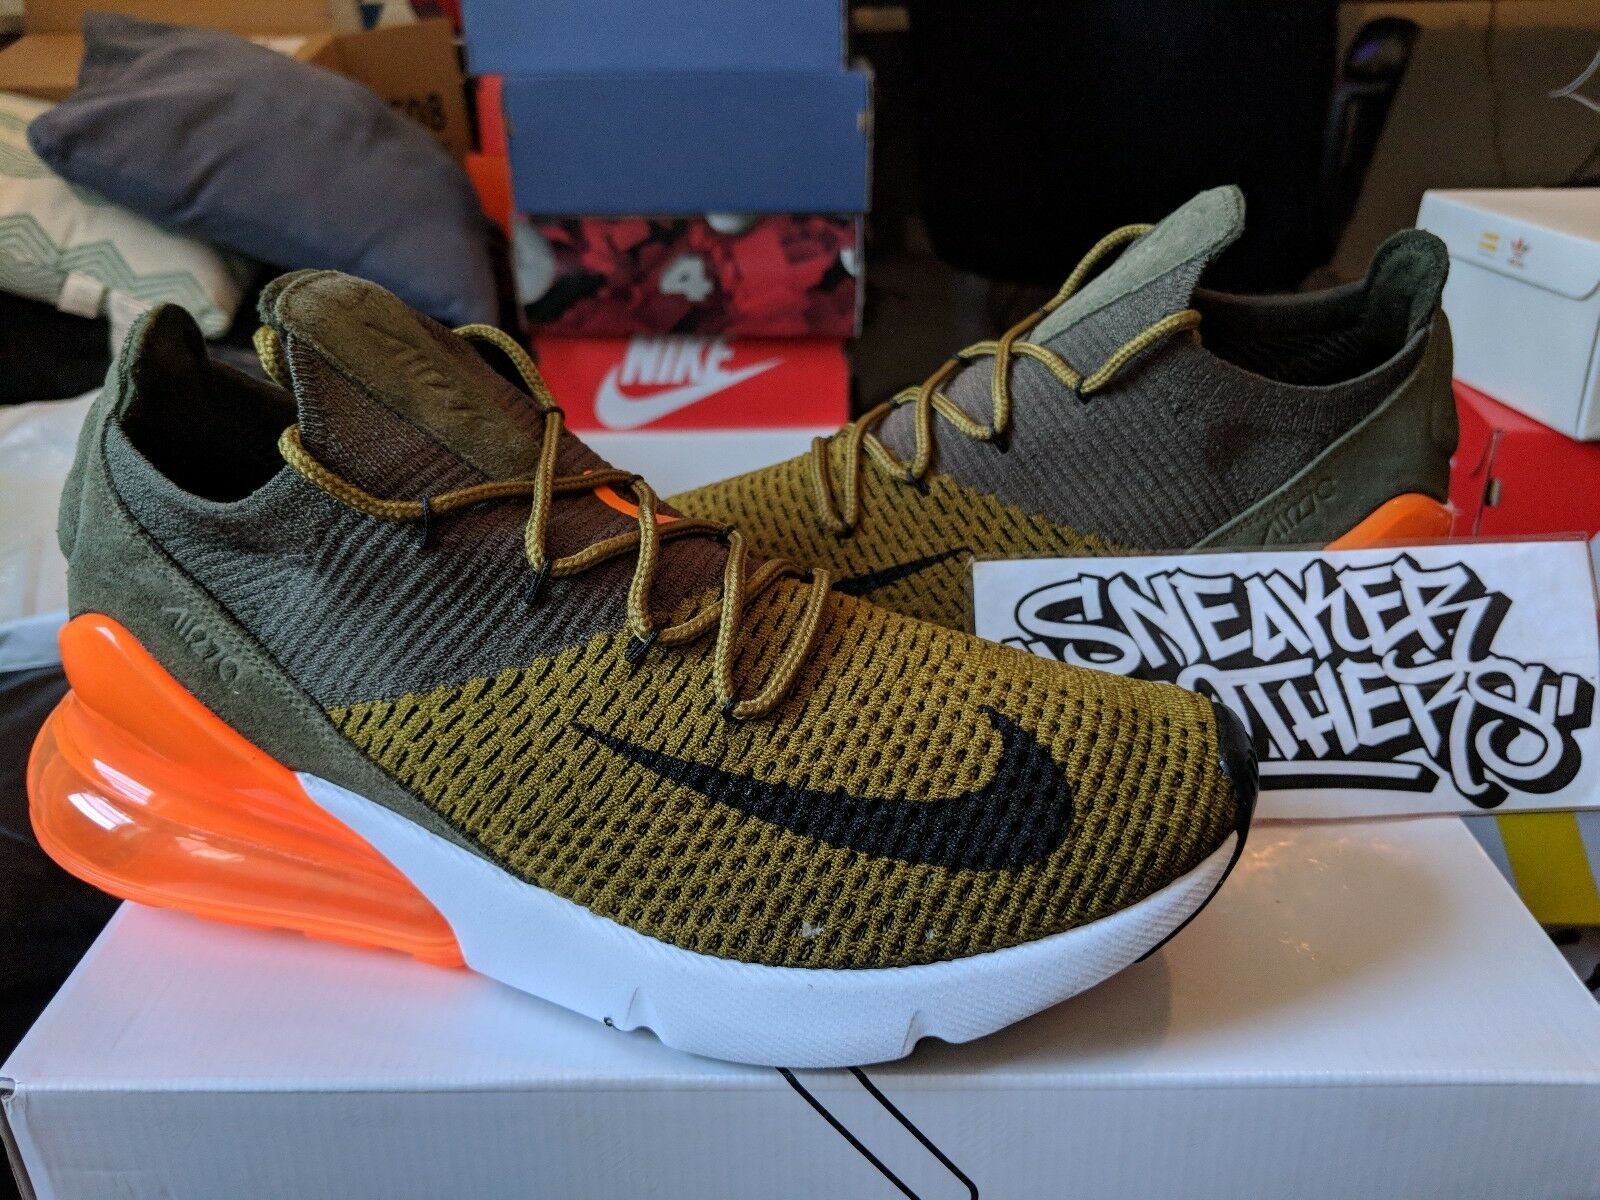 Nike Air Max 270 Flyknit Olive Green Suede White Orange Black AO1023-301